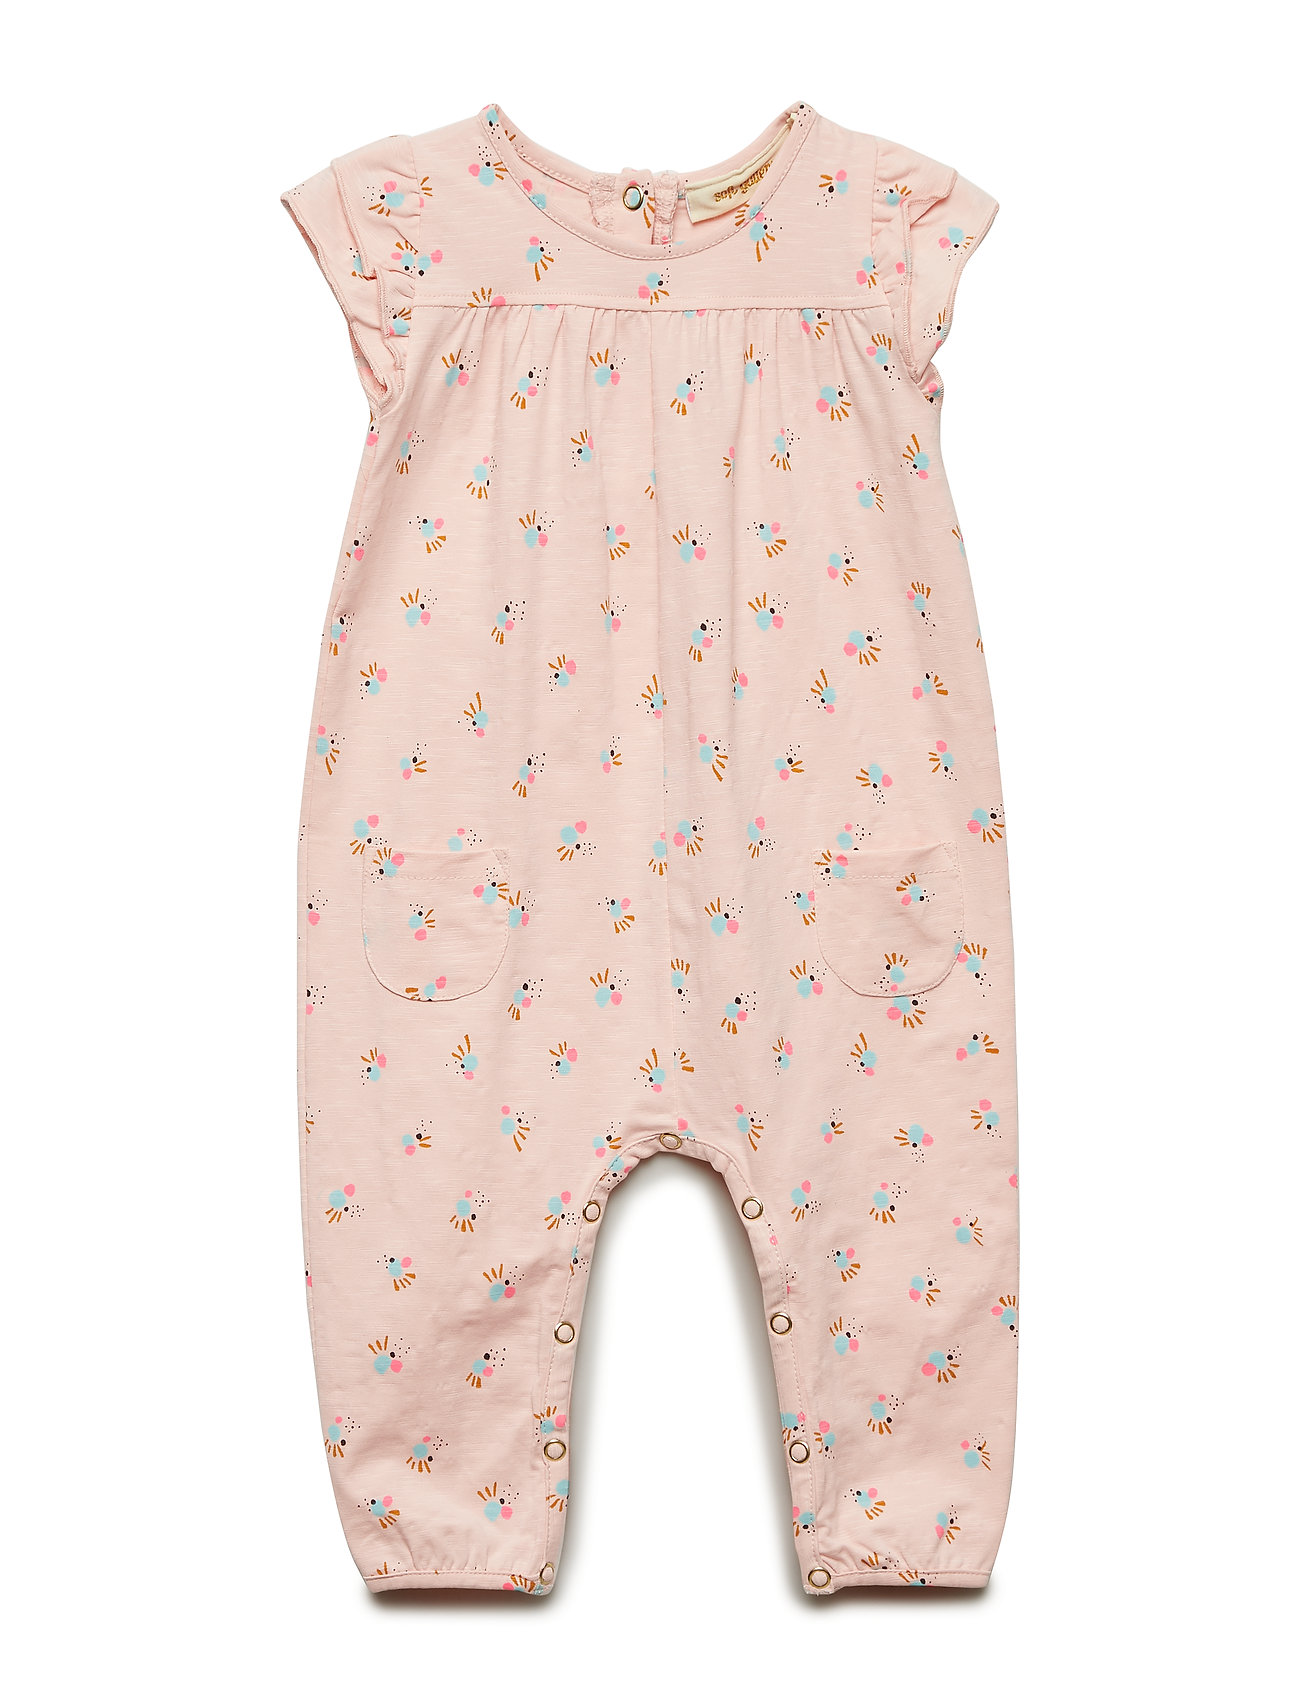 Soft Gallery Abigail Jumpsuit - CHINTZ ROSE, AOP COCKATOO